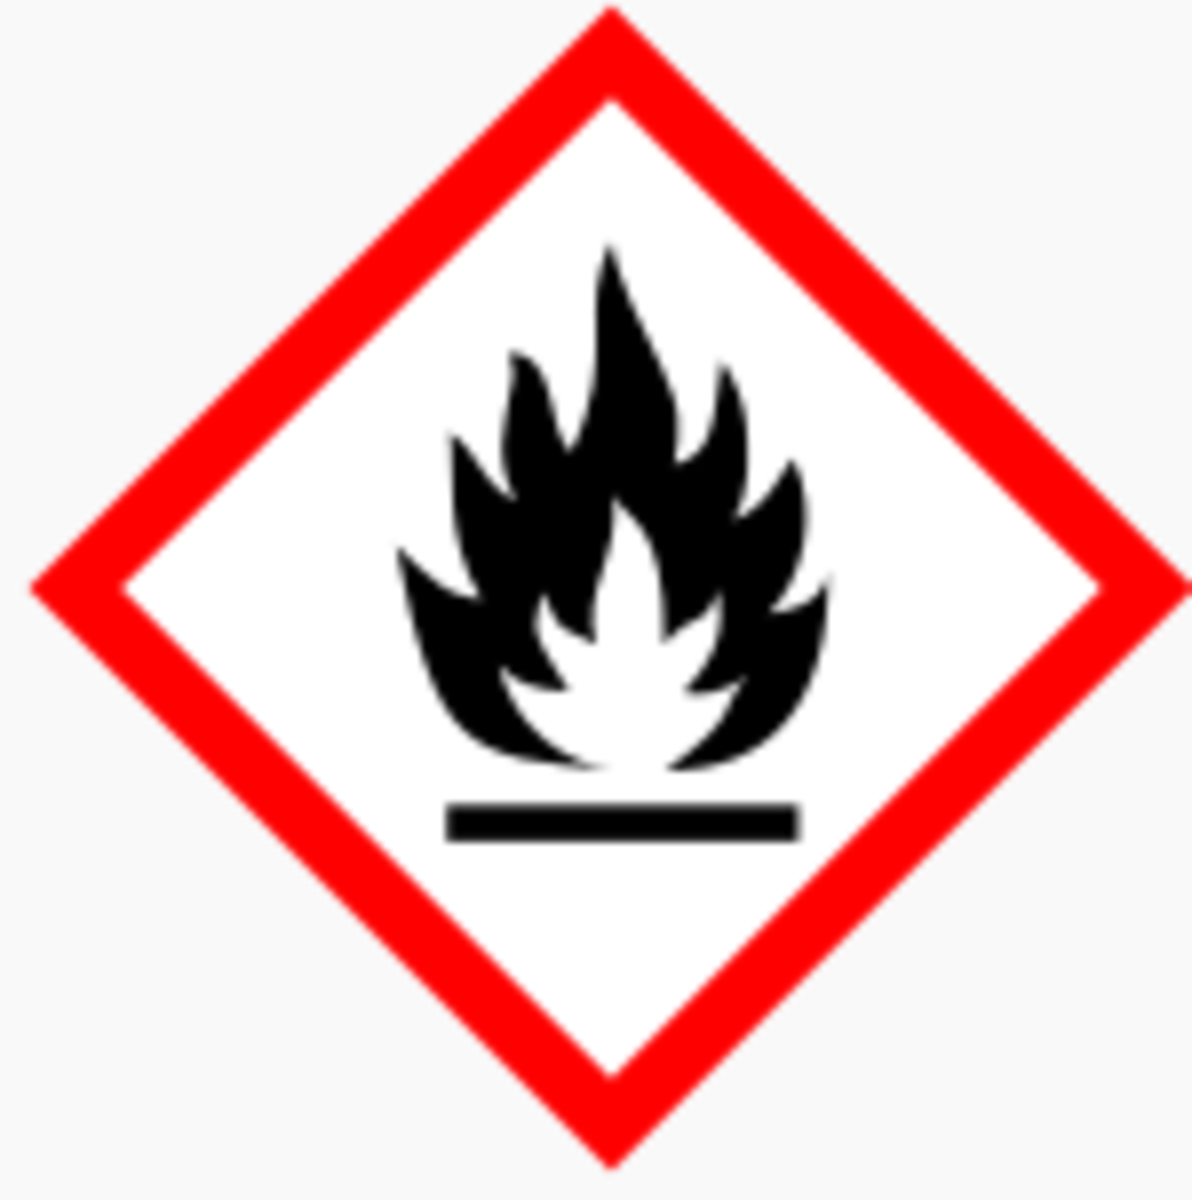 a-list-and-description-of-safety-signs